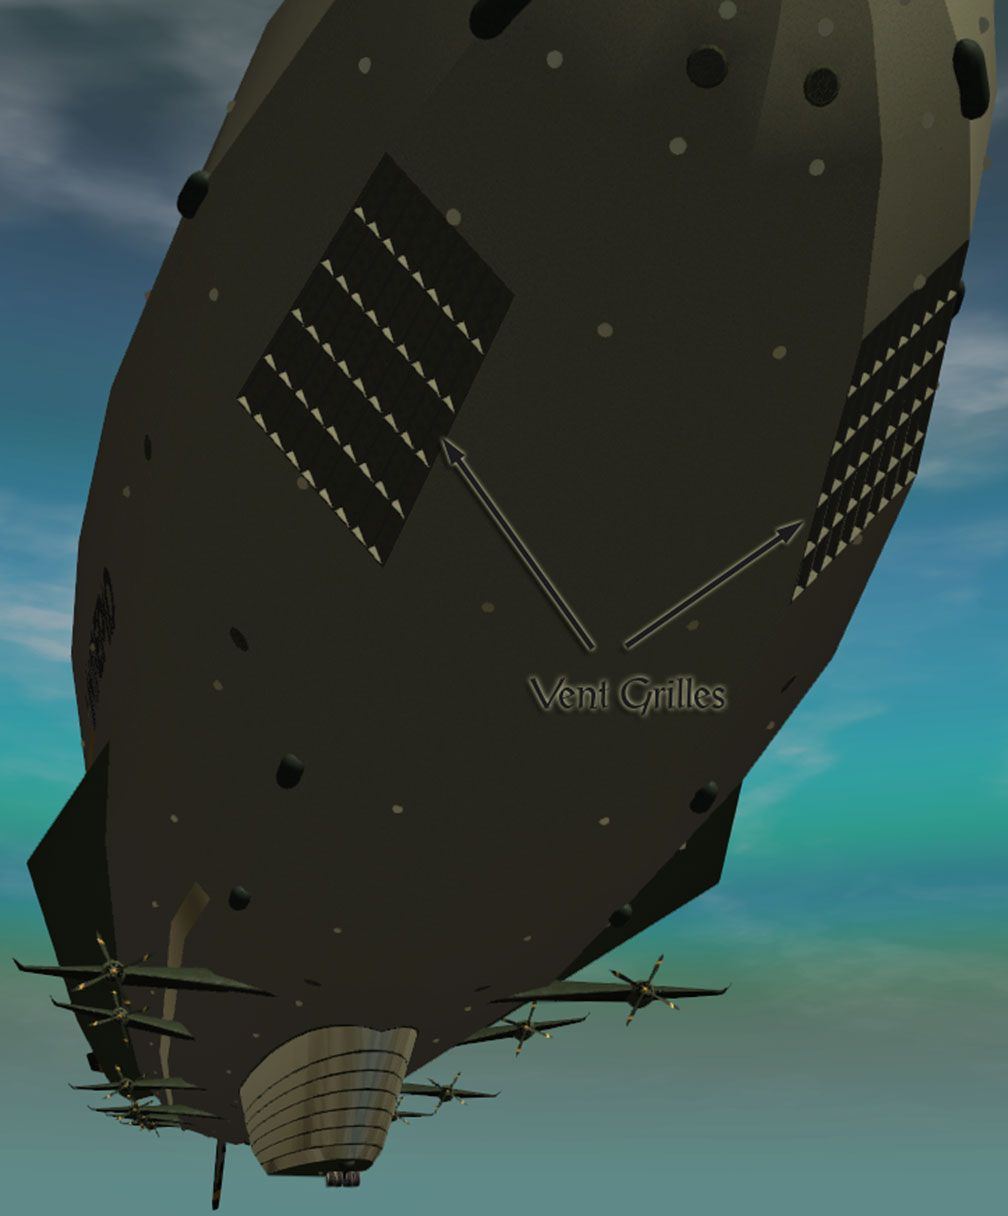 My Adventures In SketchUp - Intrepid: A Revolution In Design - A Close-Up RCT3 Screenshot Showing Nearly All Of Intrepid, Displaying Both Intrepid's Vent Grilles In The Foreground. The Viewer Is Somewhat Below Fore Starboard Looking Aft.